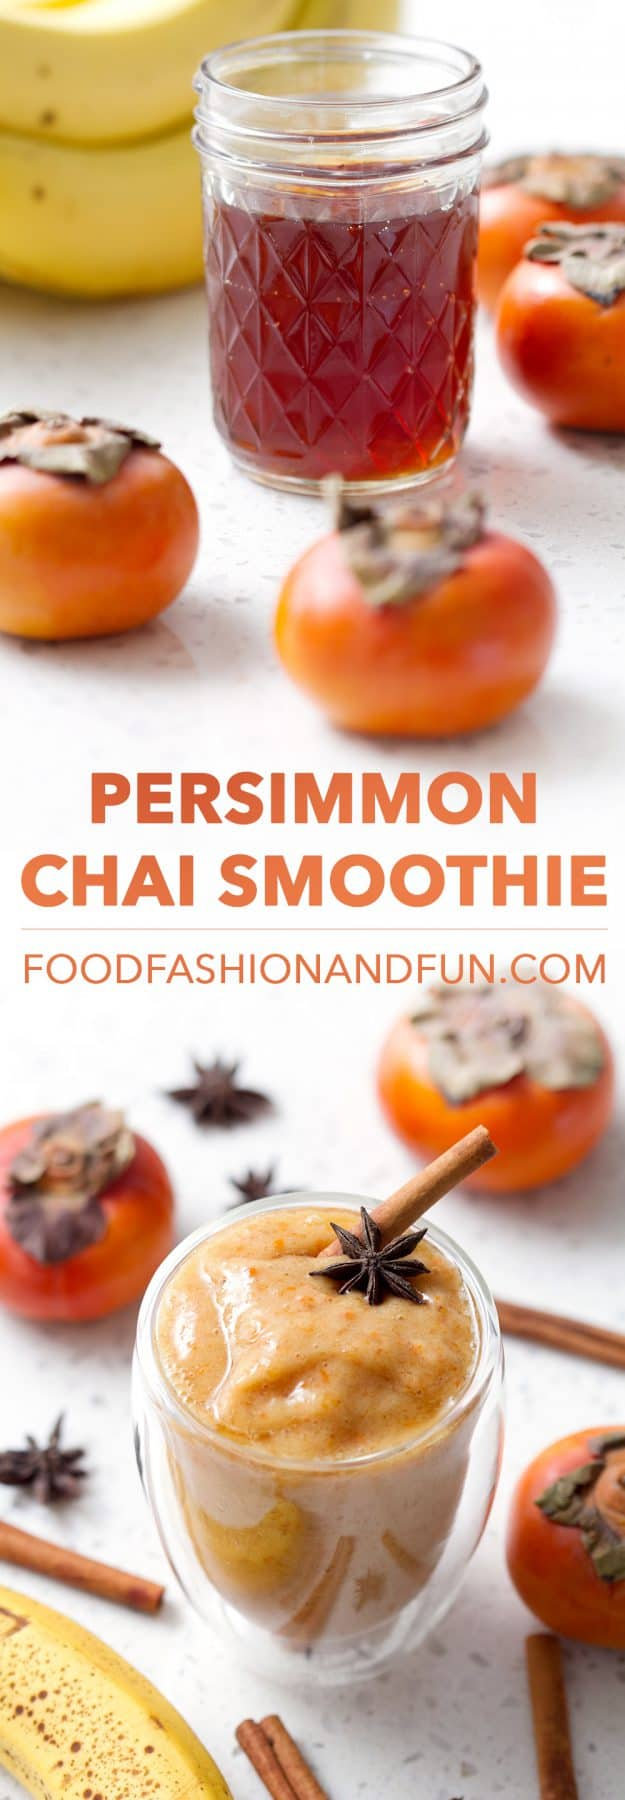 This recipe for Persimmon Chai Smoothie use uses only a few ingredients to create a healthy and delicious drink. Persimmons have a rather short season so take advantage and blend this seasonal smoothie. This drink is vegan and paleo/AIP.